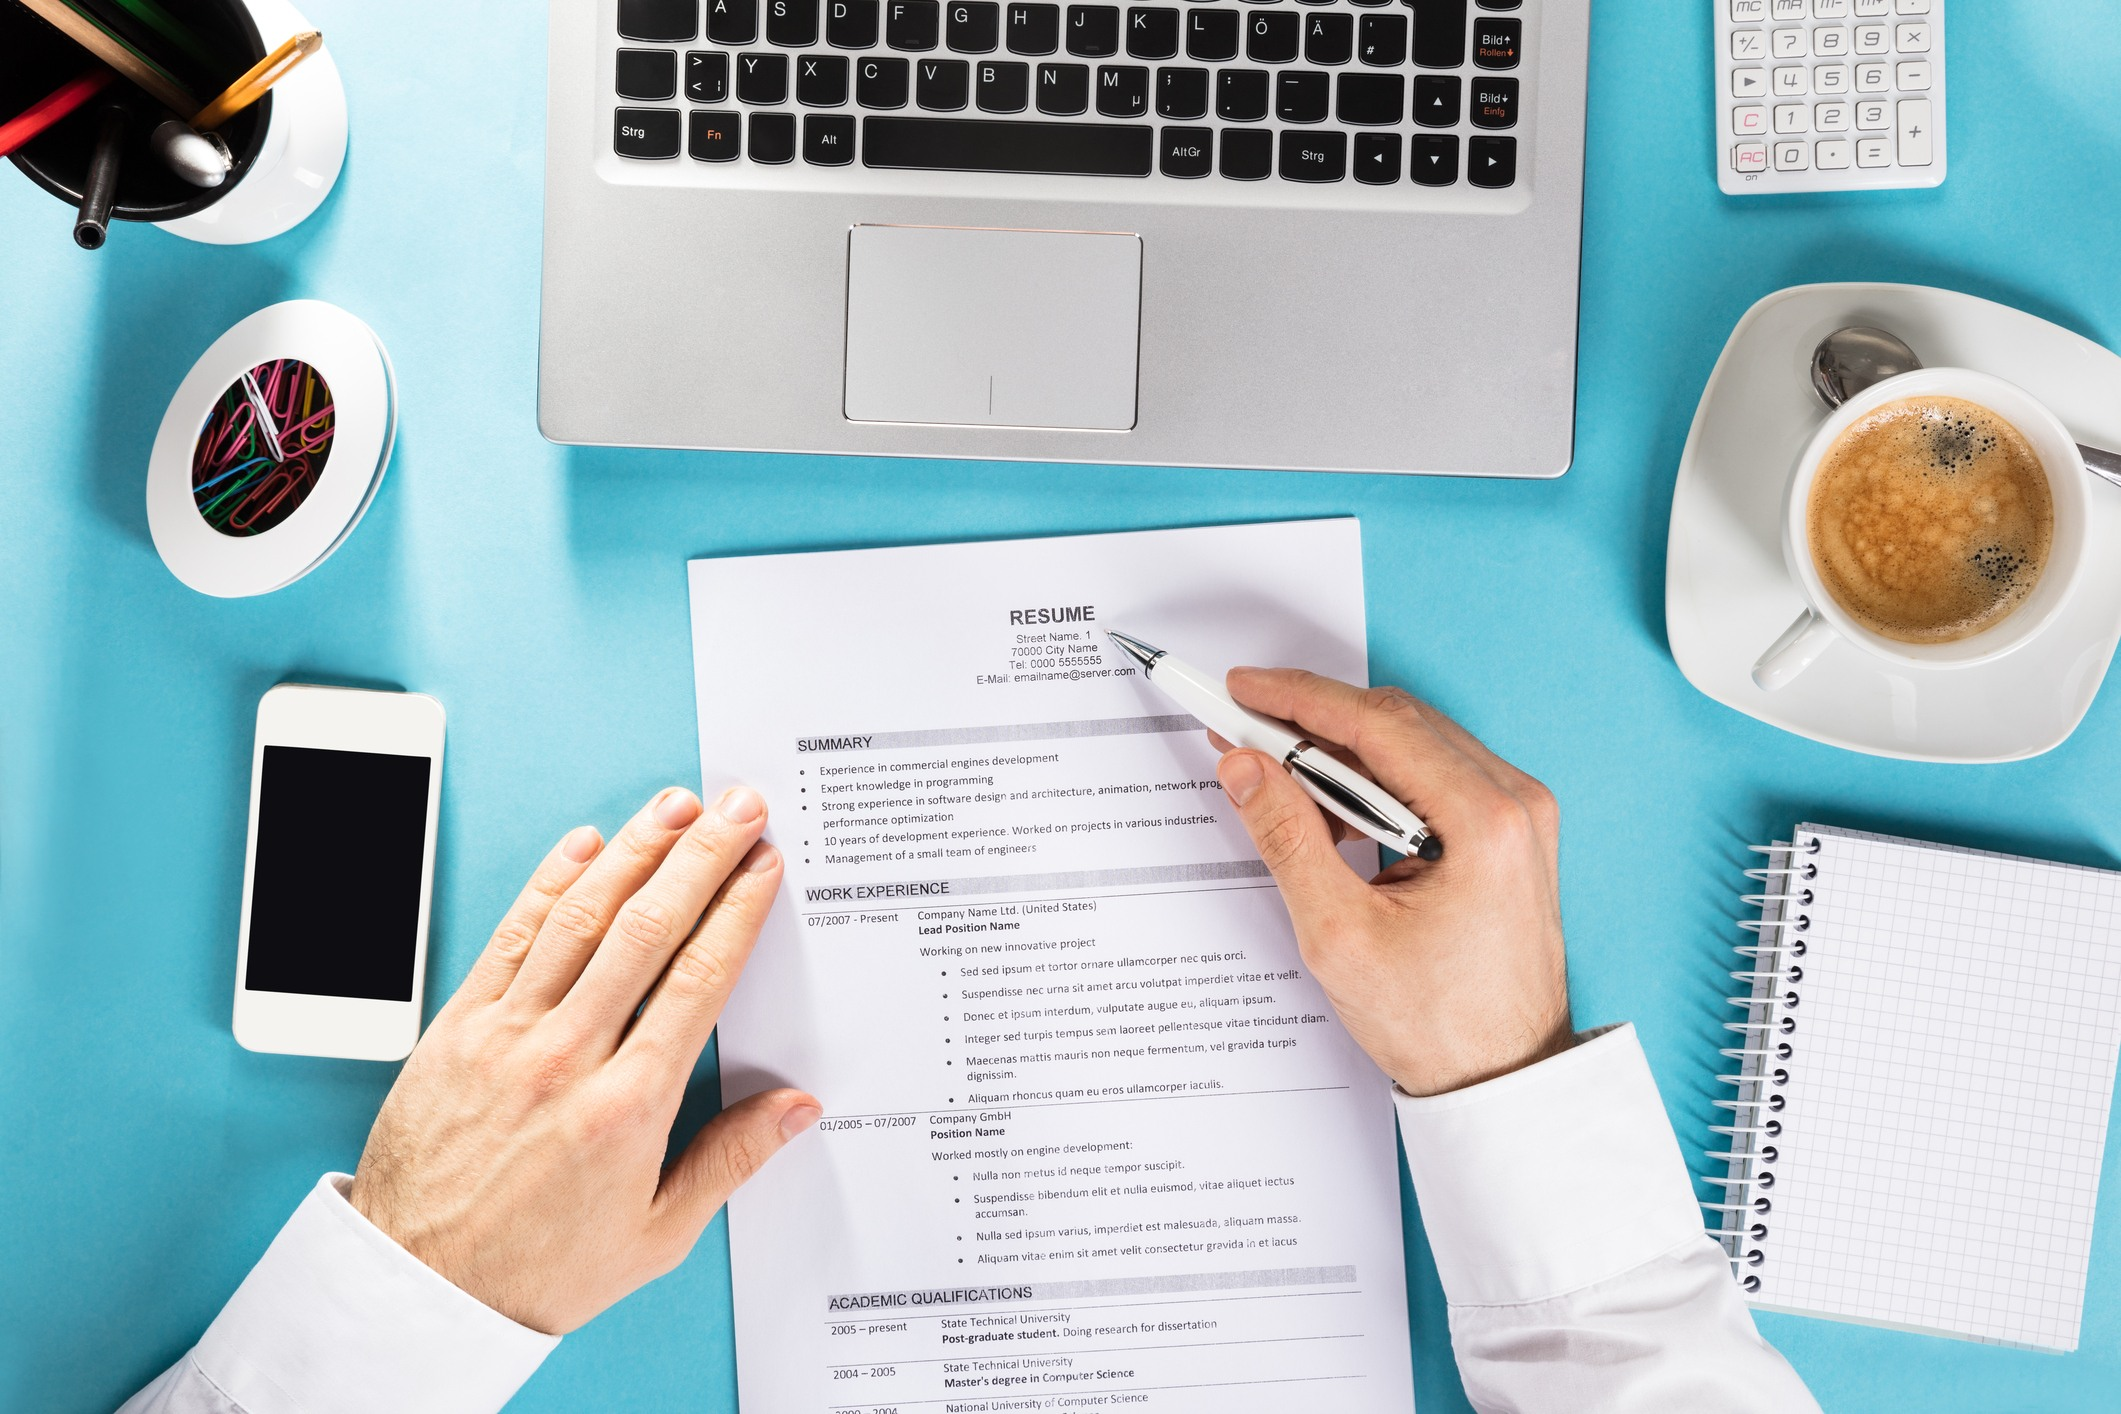 Resume Mistakes The Most Ridiculous Resume Mistakes That Make Employers Cringe